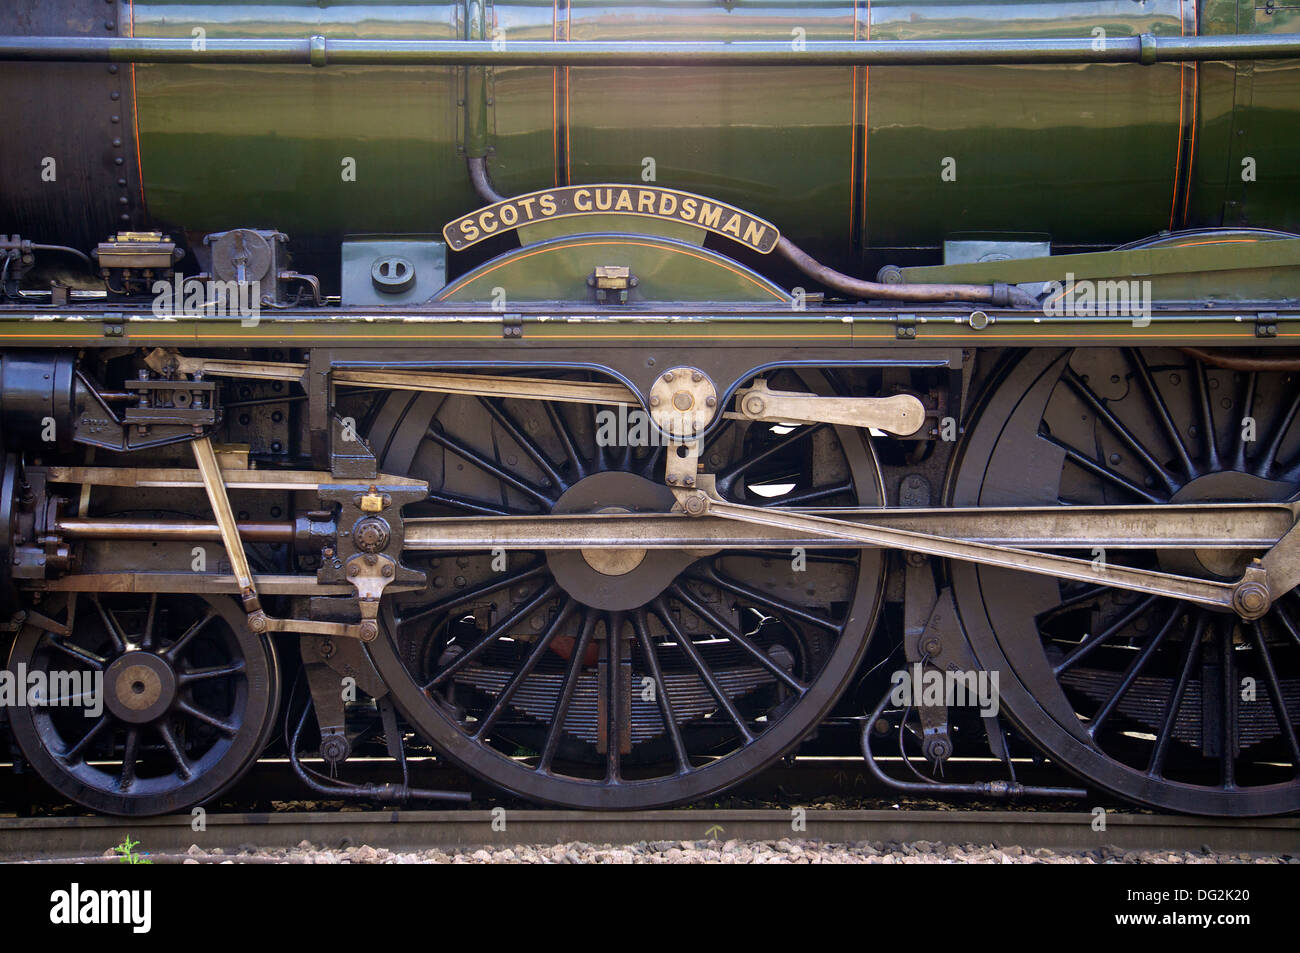 'Scots Guardsman' name plate and wheels. Carlisle Railway Station with a special charter train. Carlisle Cumbria England. - Stock Image